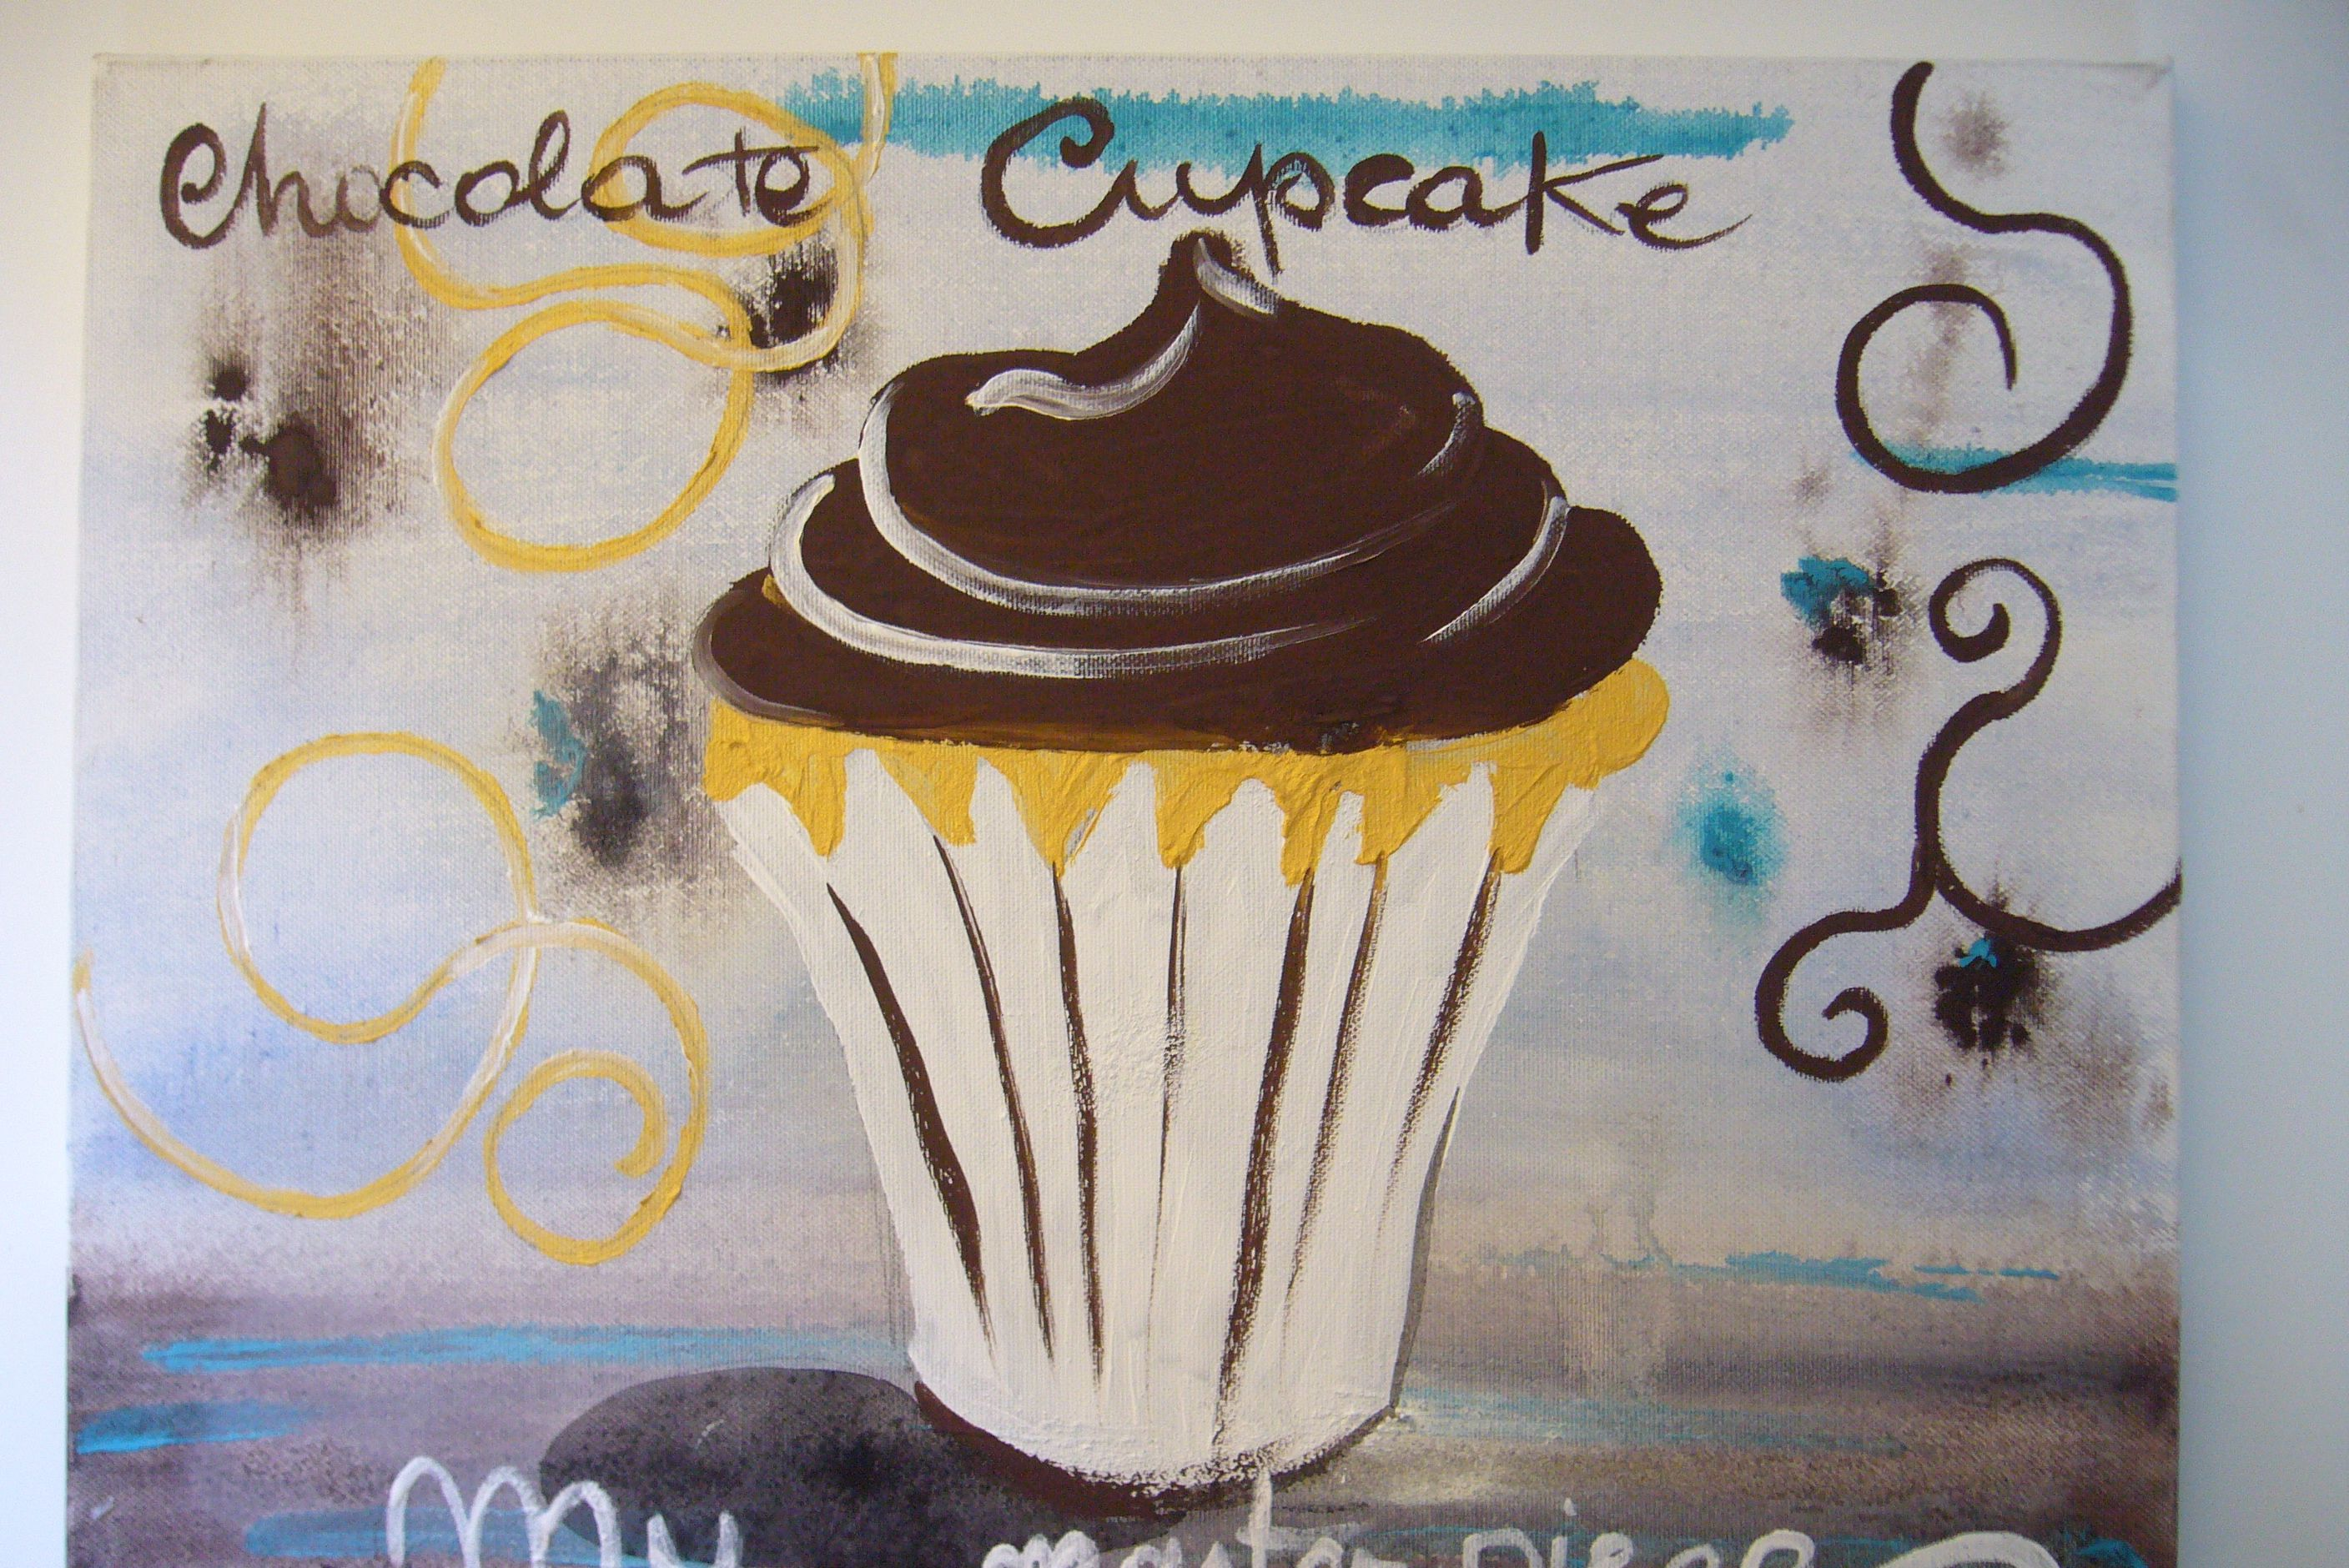 Chocolate Cupcake painted on a canvas.